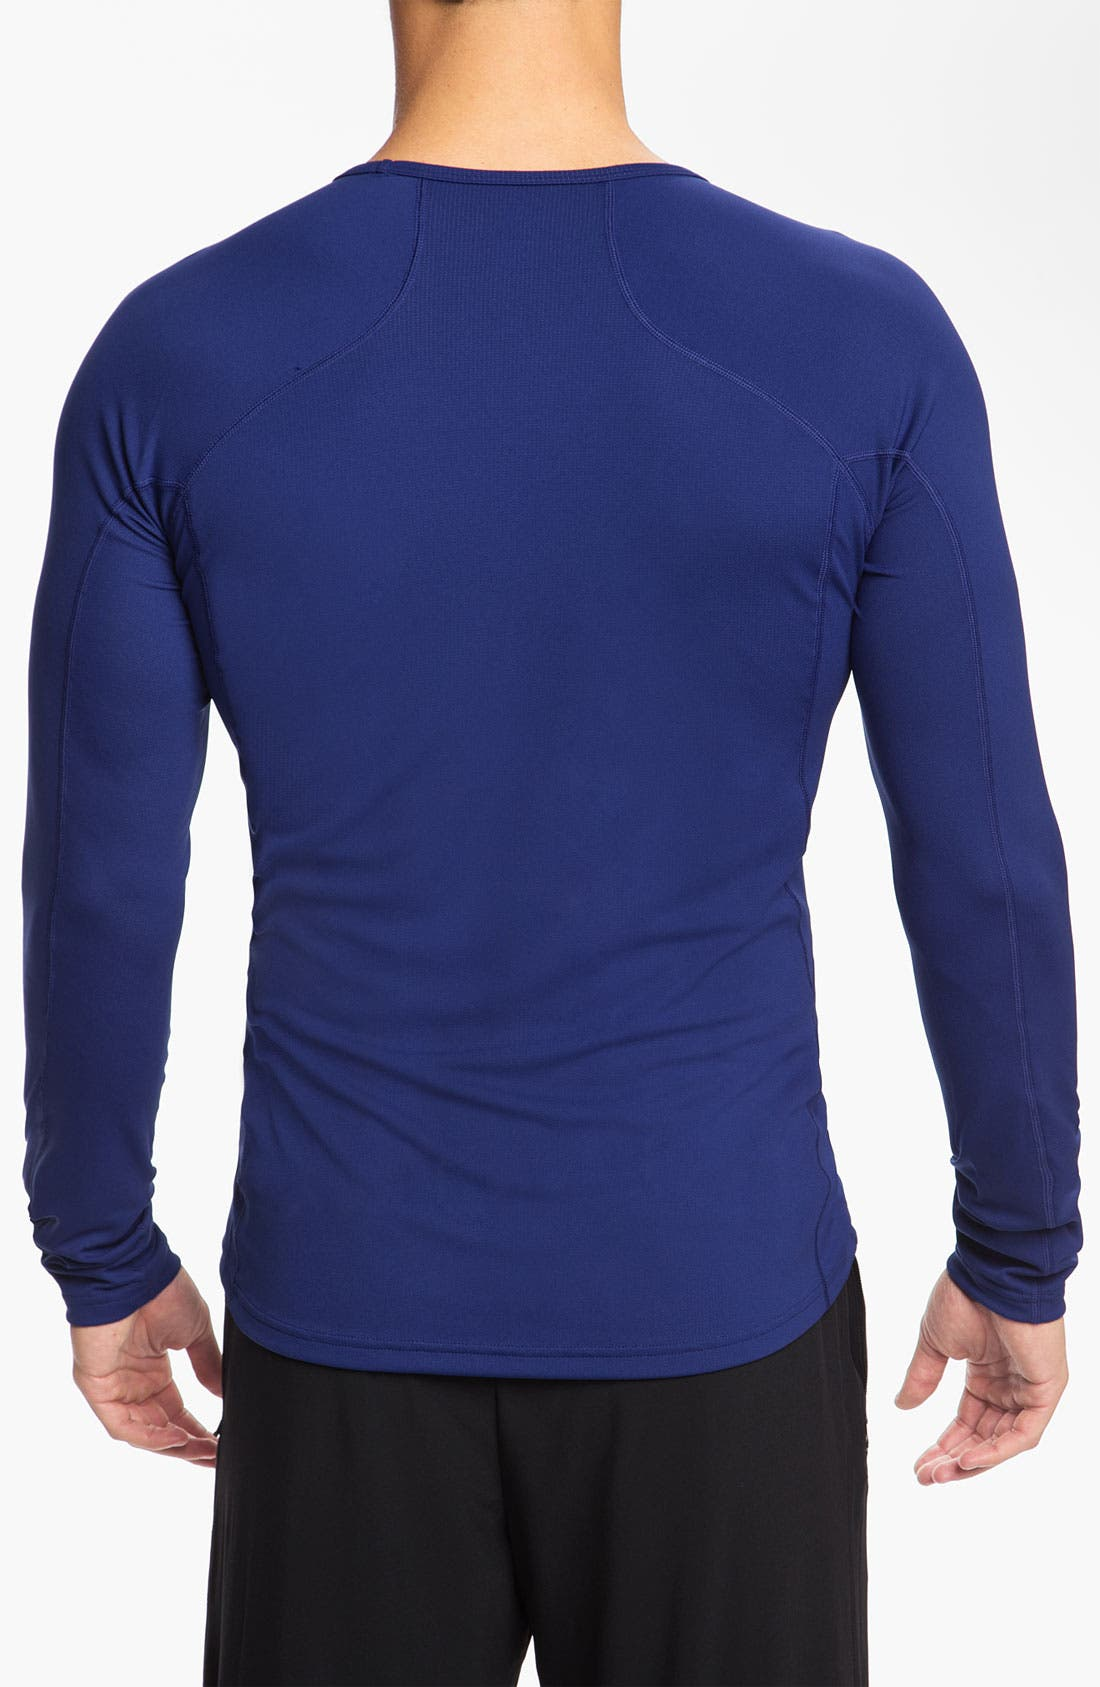 Alternate Image 2  - The North Face HyActive™ Technical Crewneck T-Shirt (Online Only)